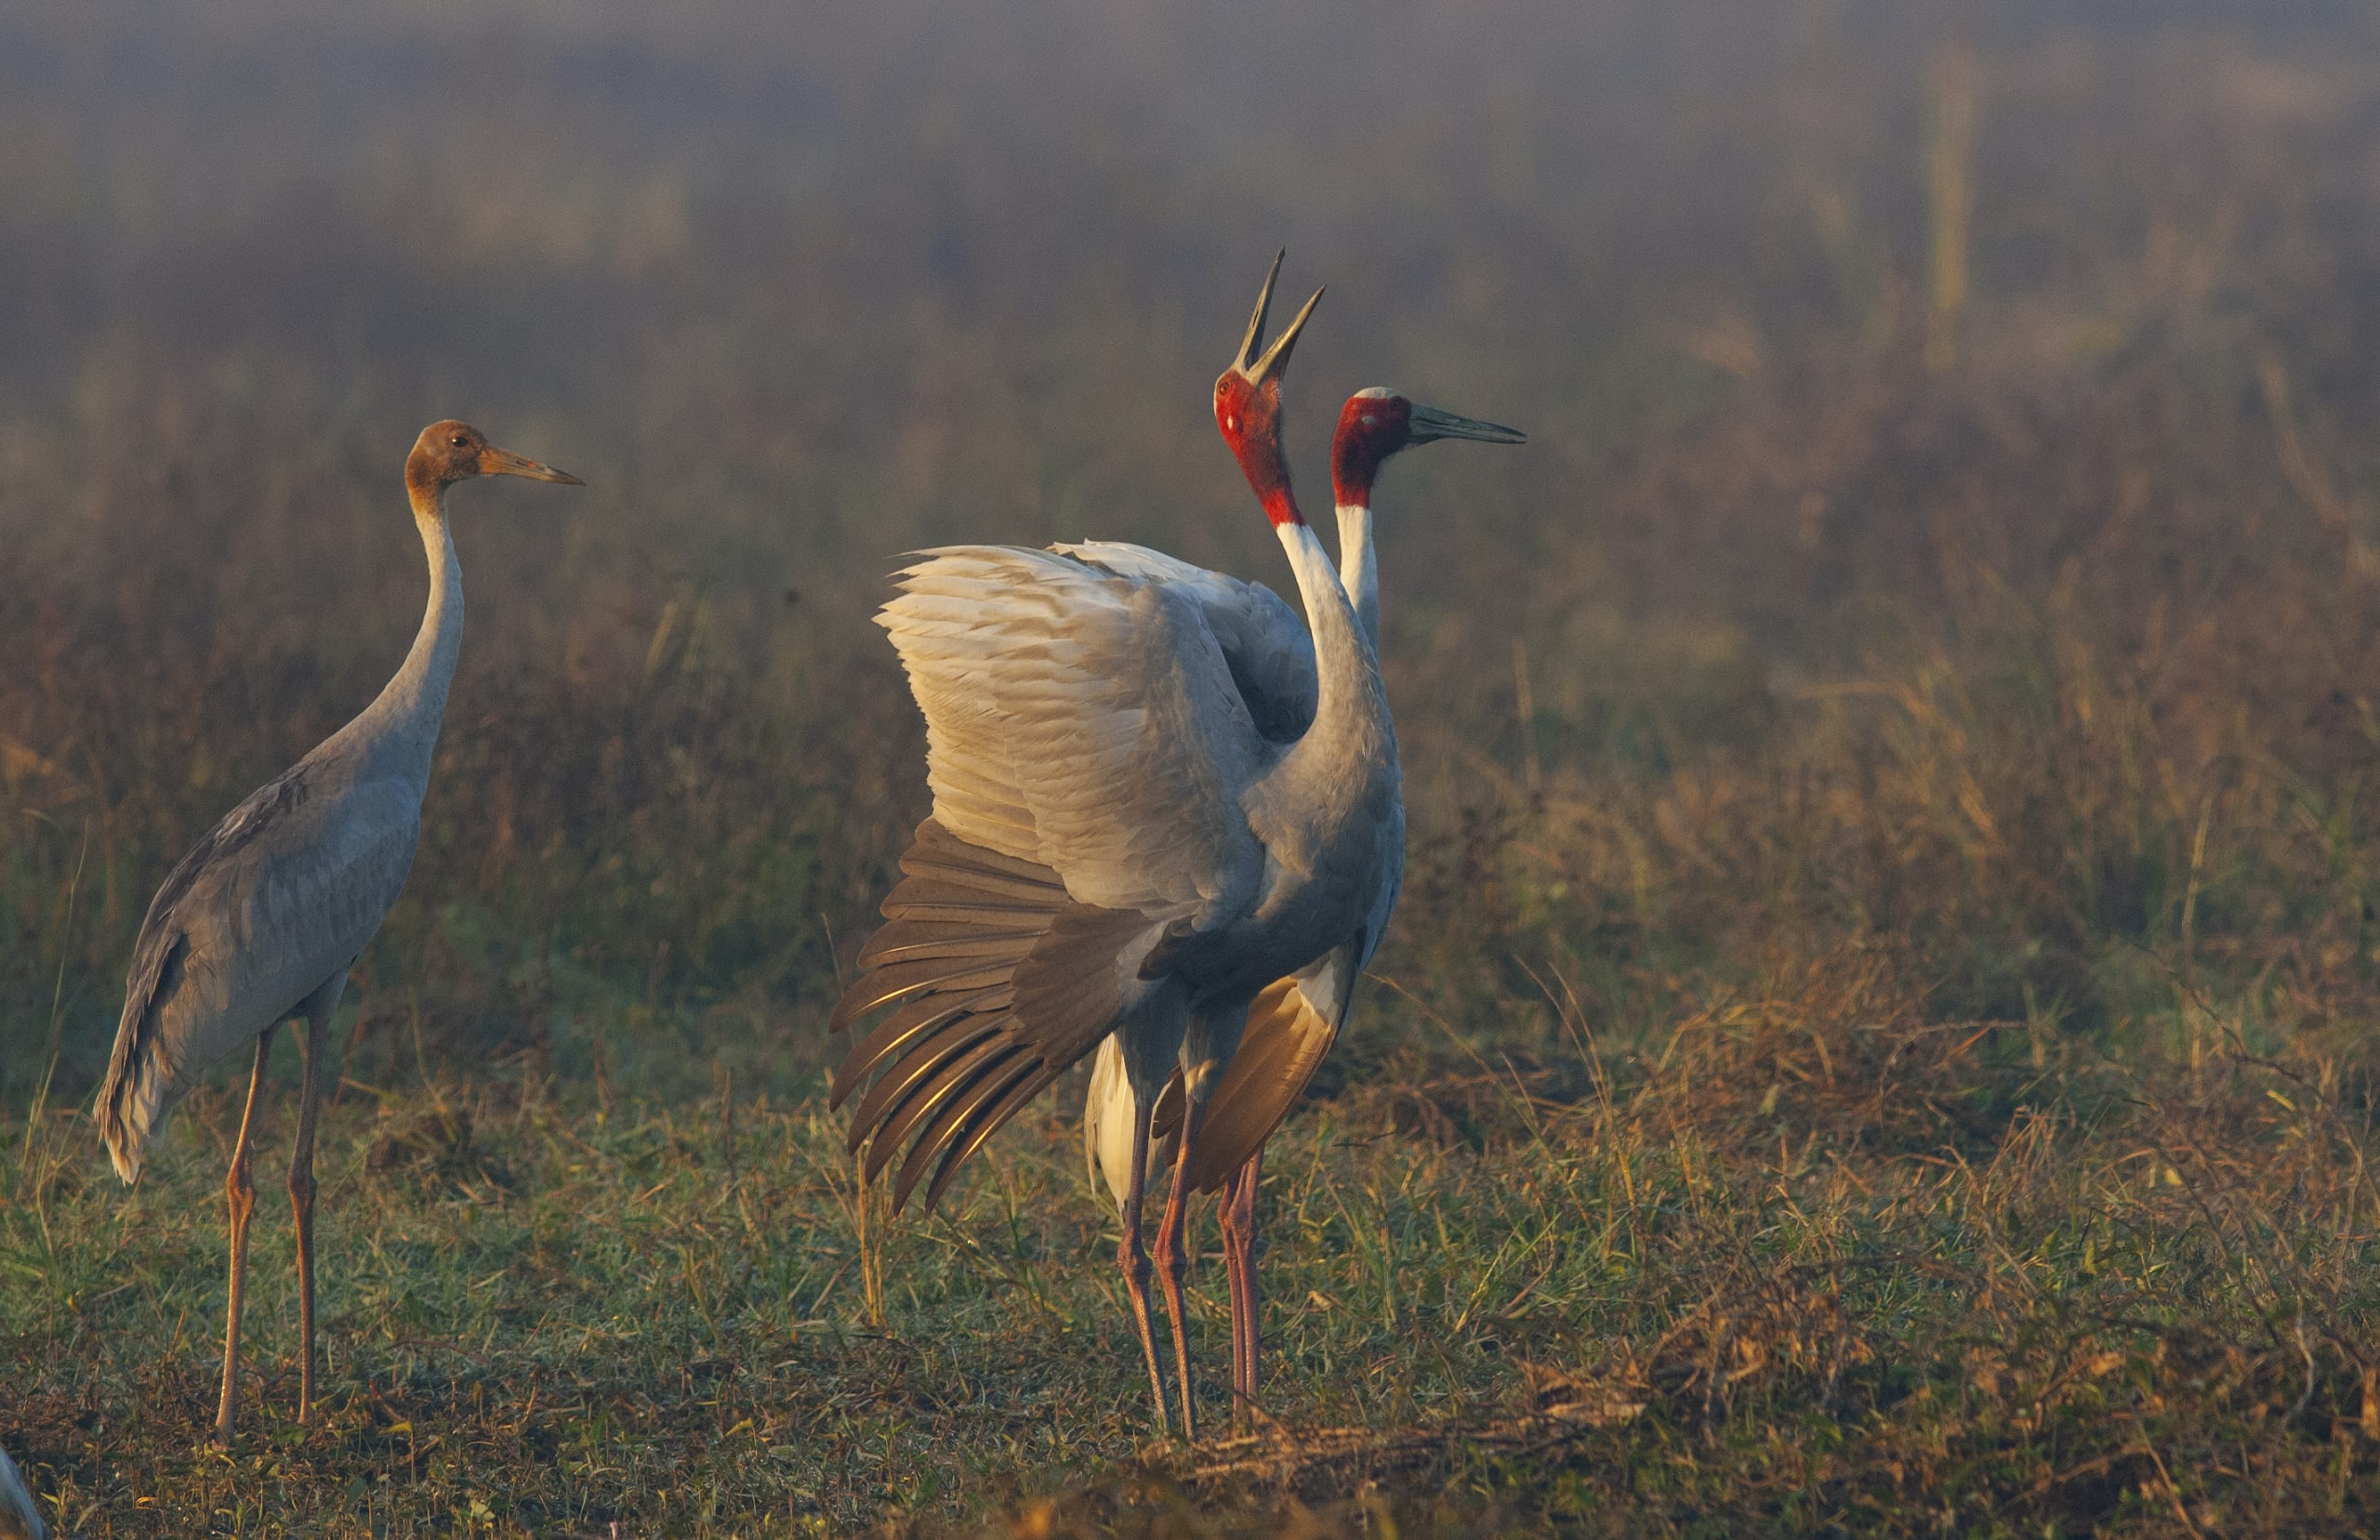 At just over five feet in height, the sarus crane is the tallest flying bird in the world.